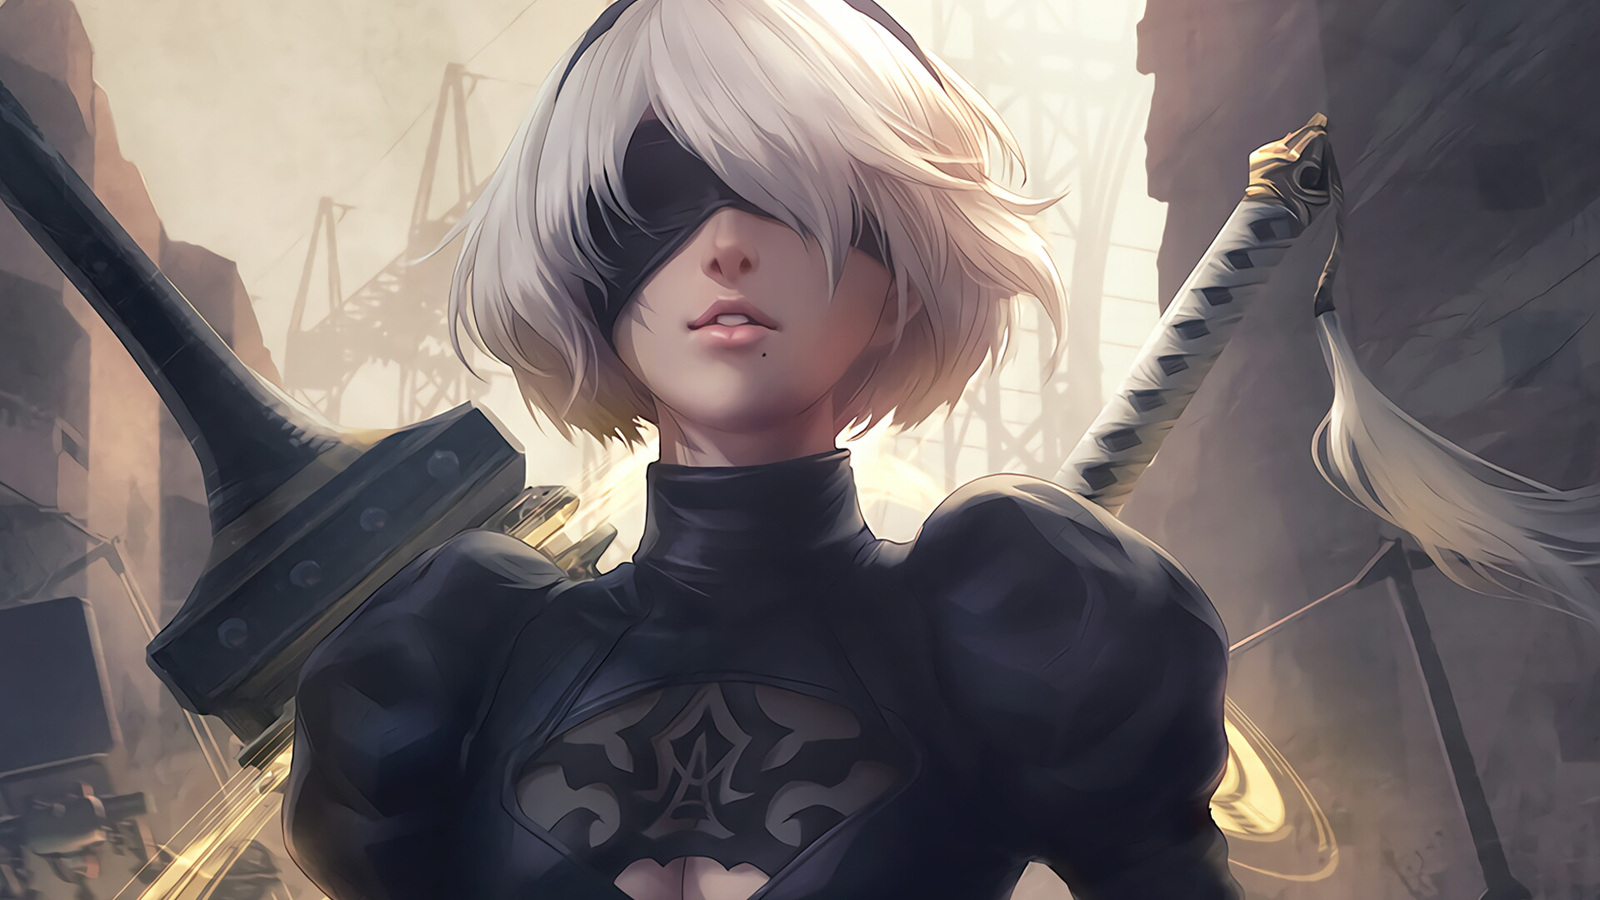 Nier Automata Fantasy Game Art Full Hd Wallpaper: 1600x900 2b Nier Automata 1600x900 Resolution HD 4k